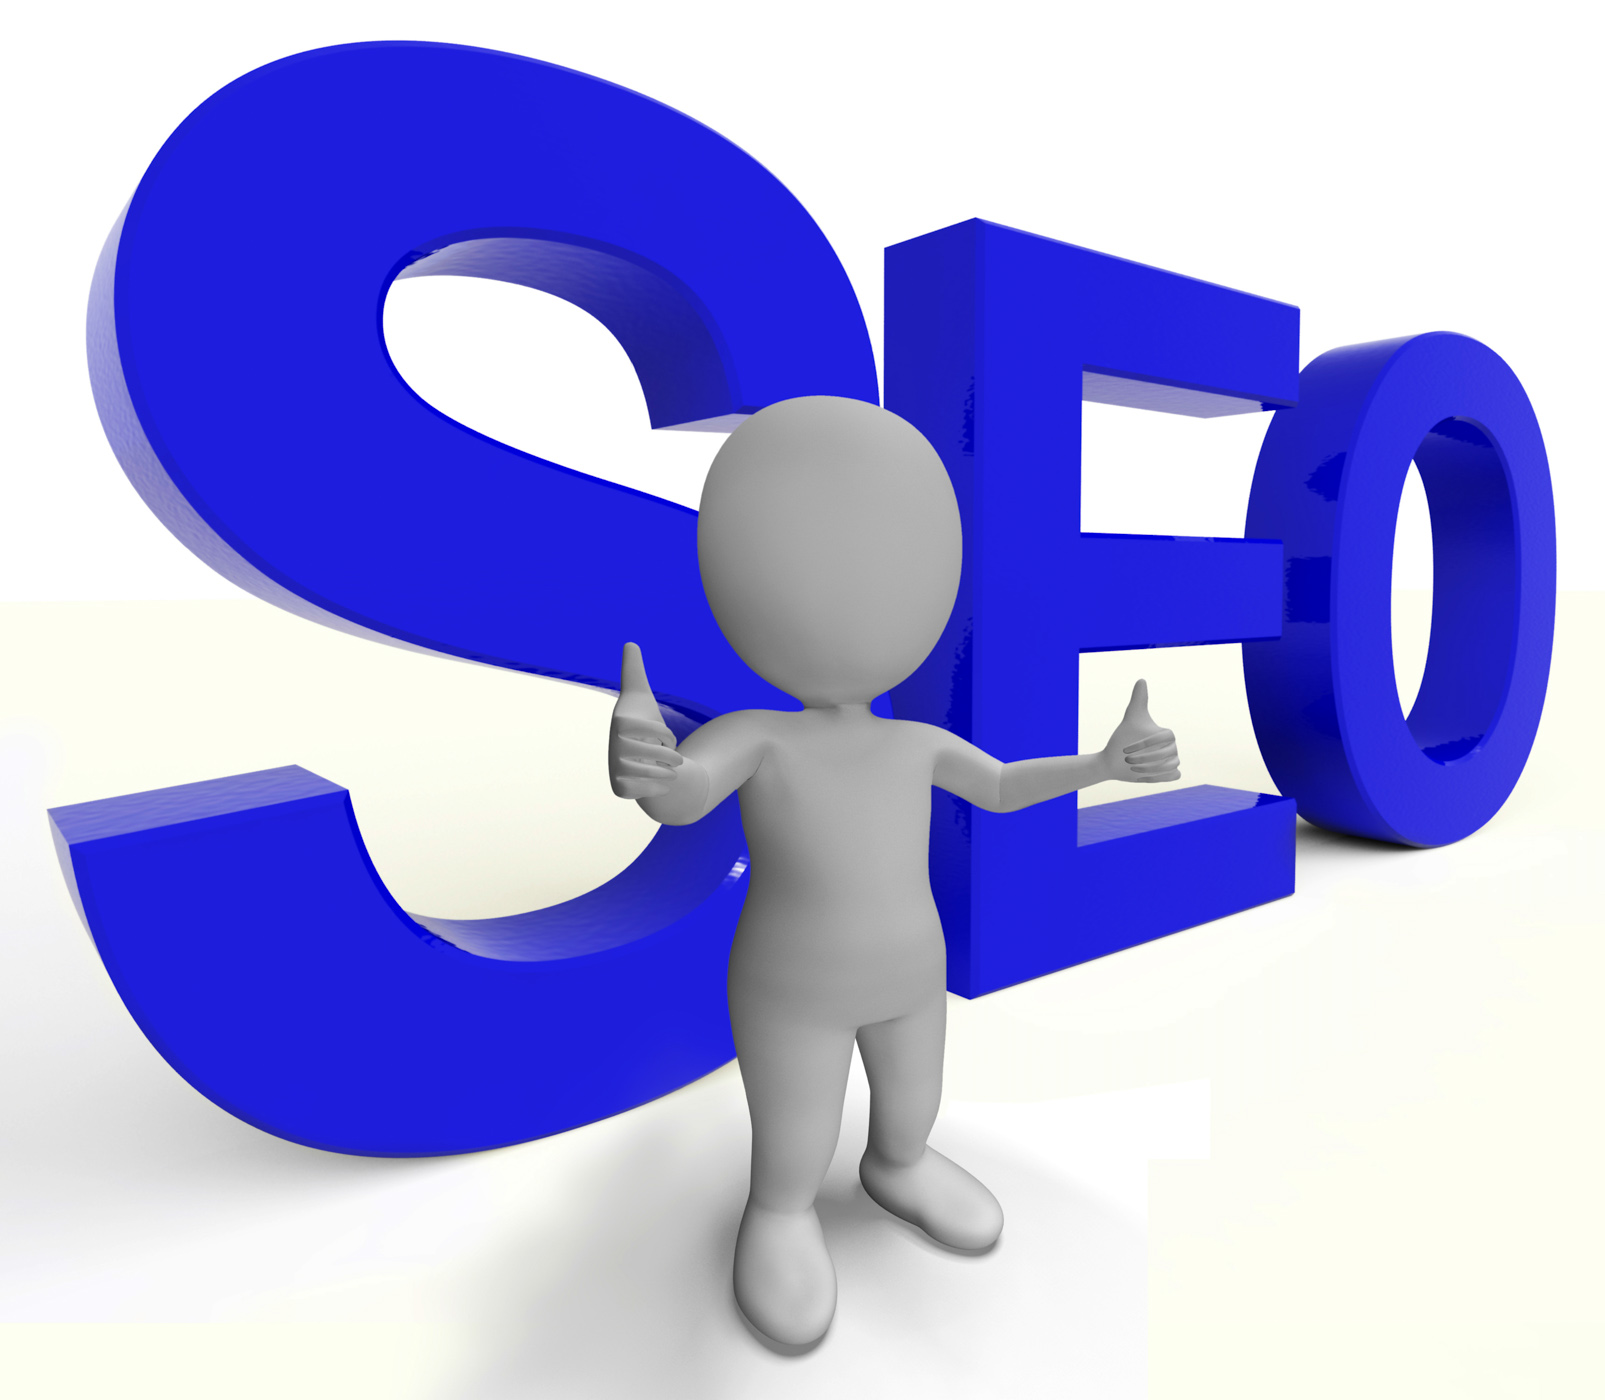 Seo word represents internet optimization and promotion photo